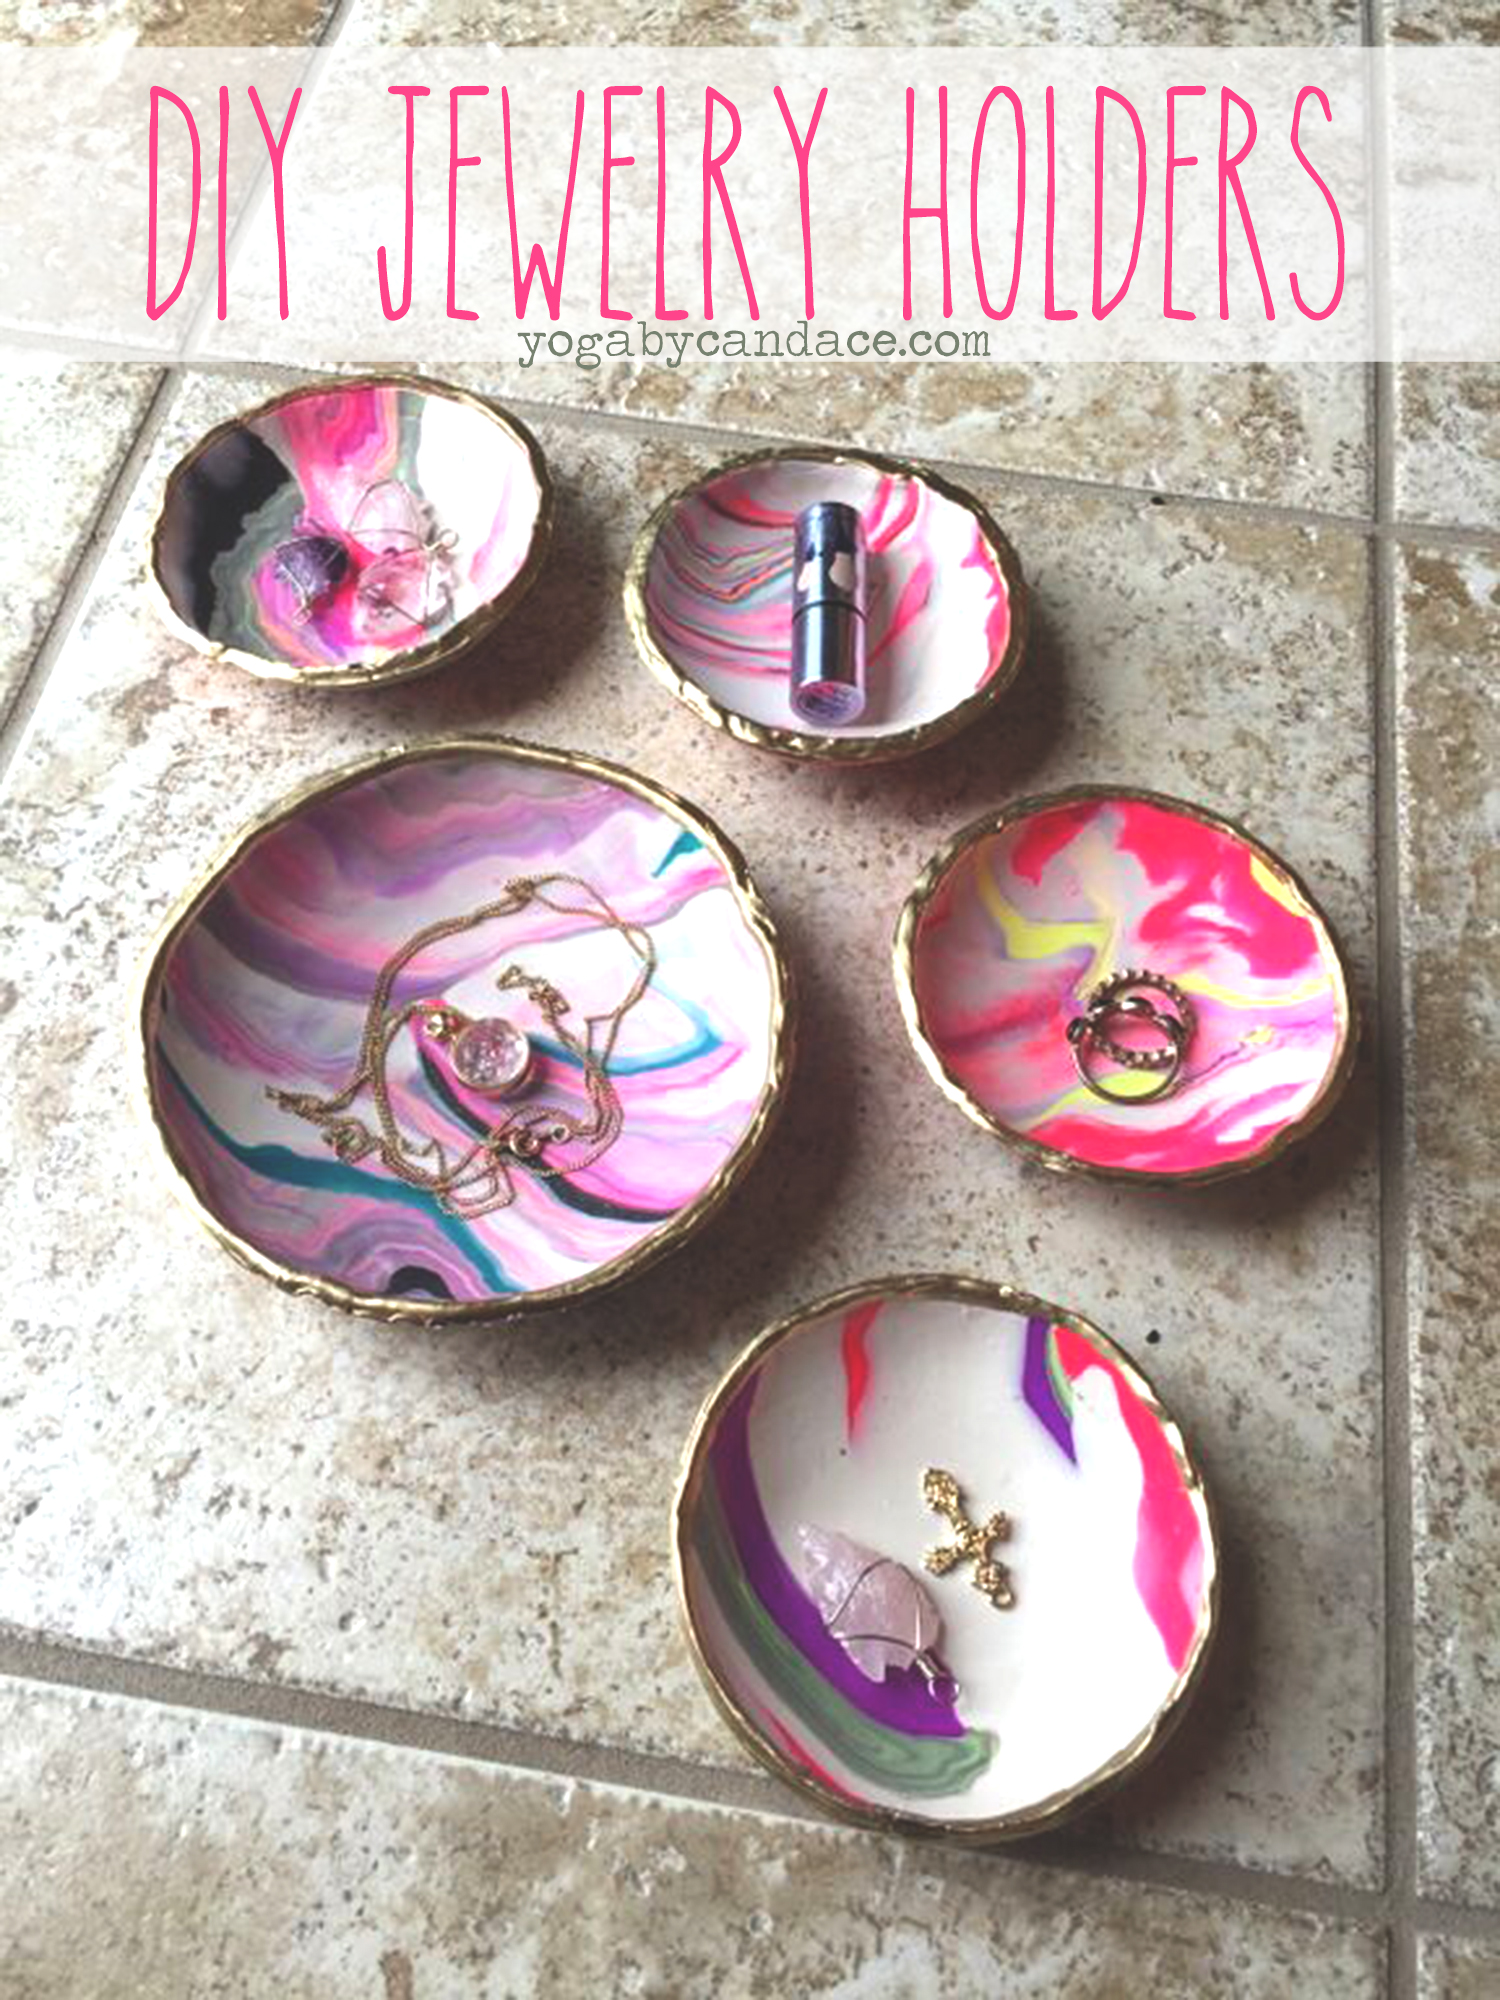 Pin now, make later! DIY Jewelry holders